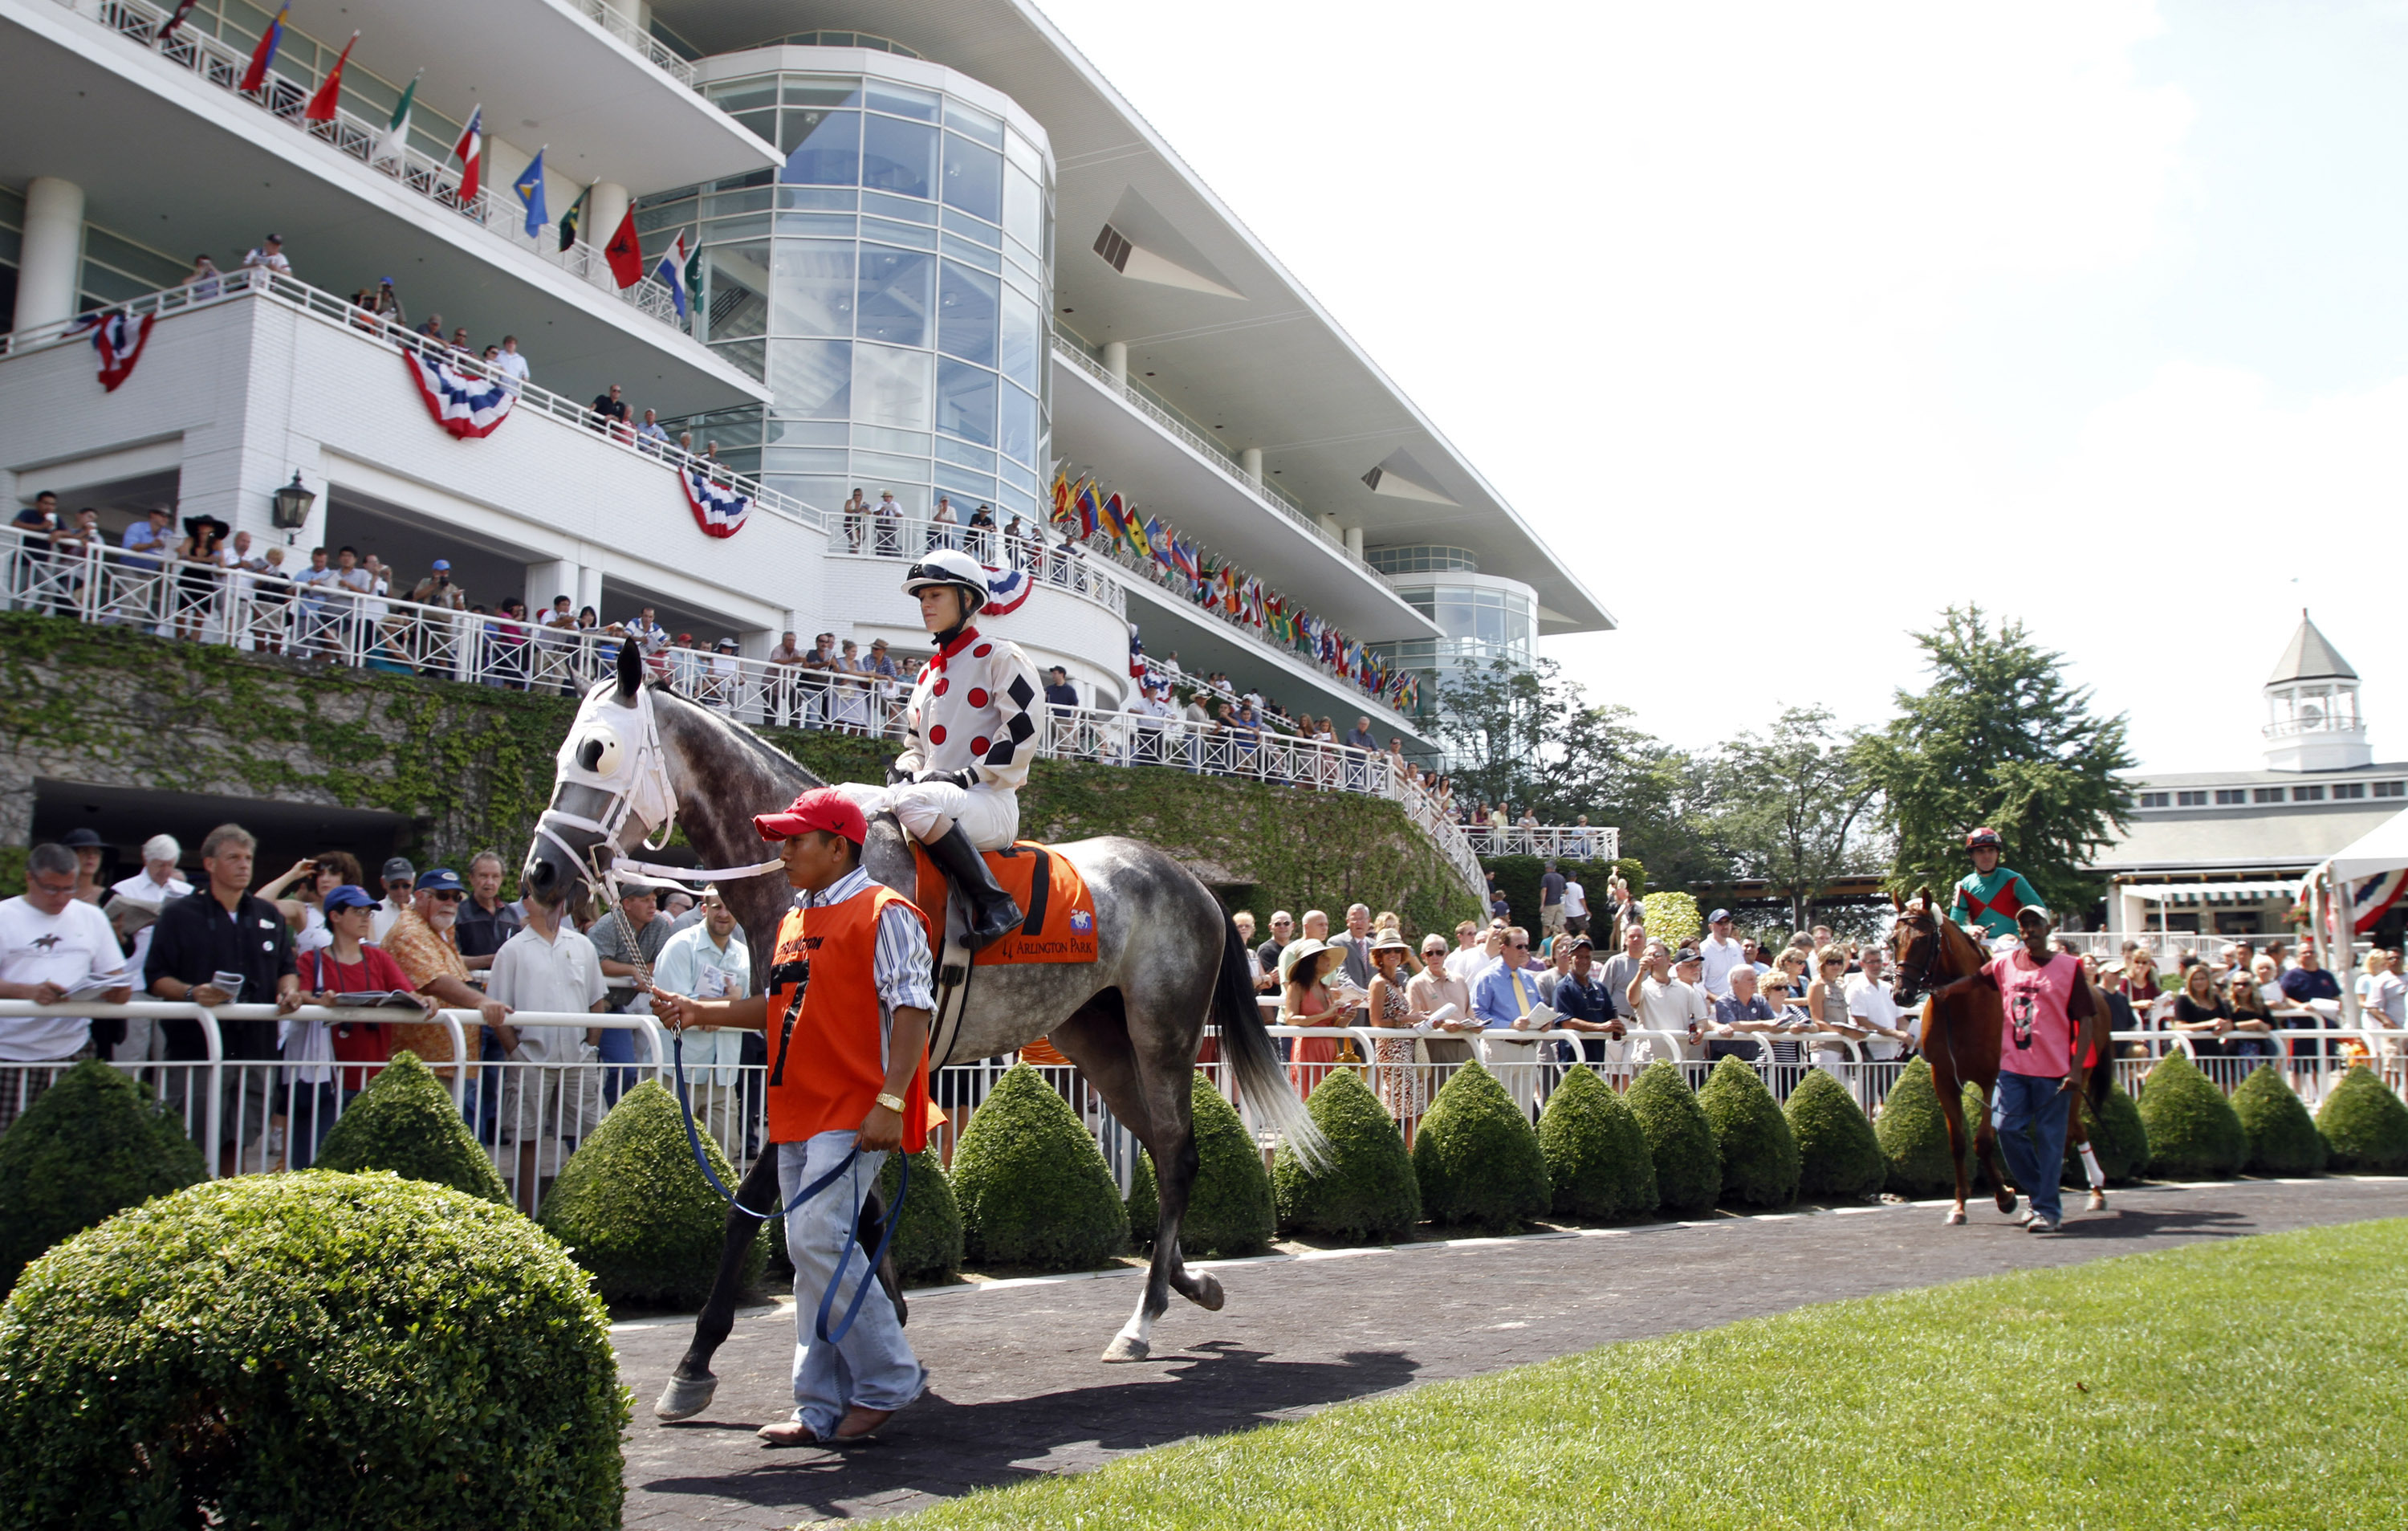 Arlington Park held its final horse race Saturday and now is in the process of being purchased by the Bears.